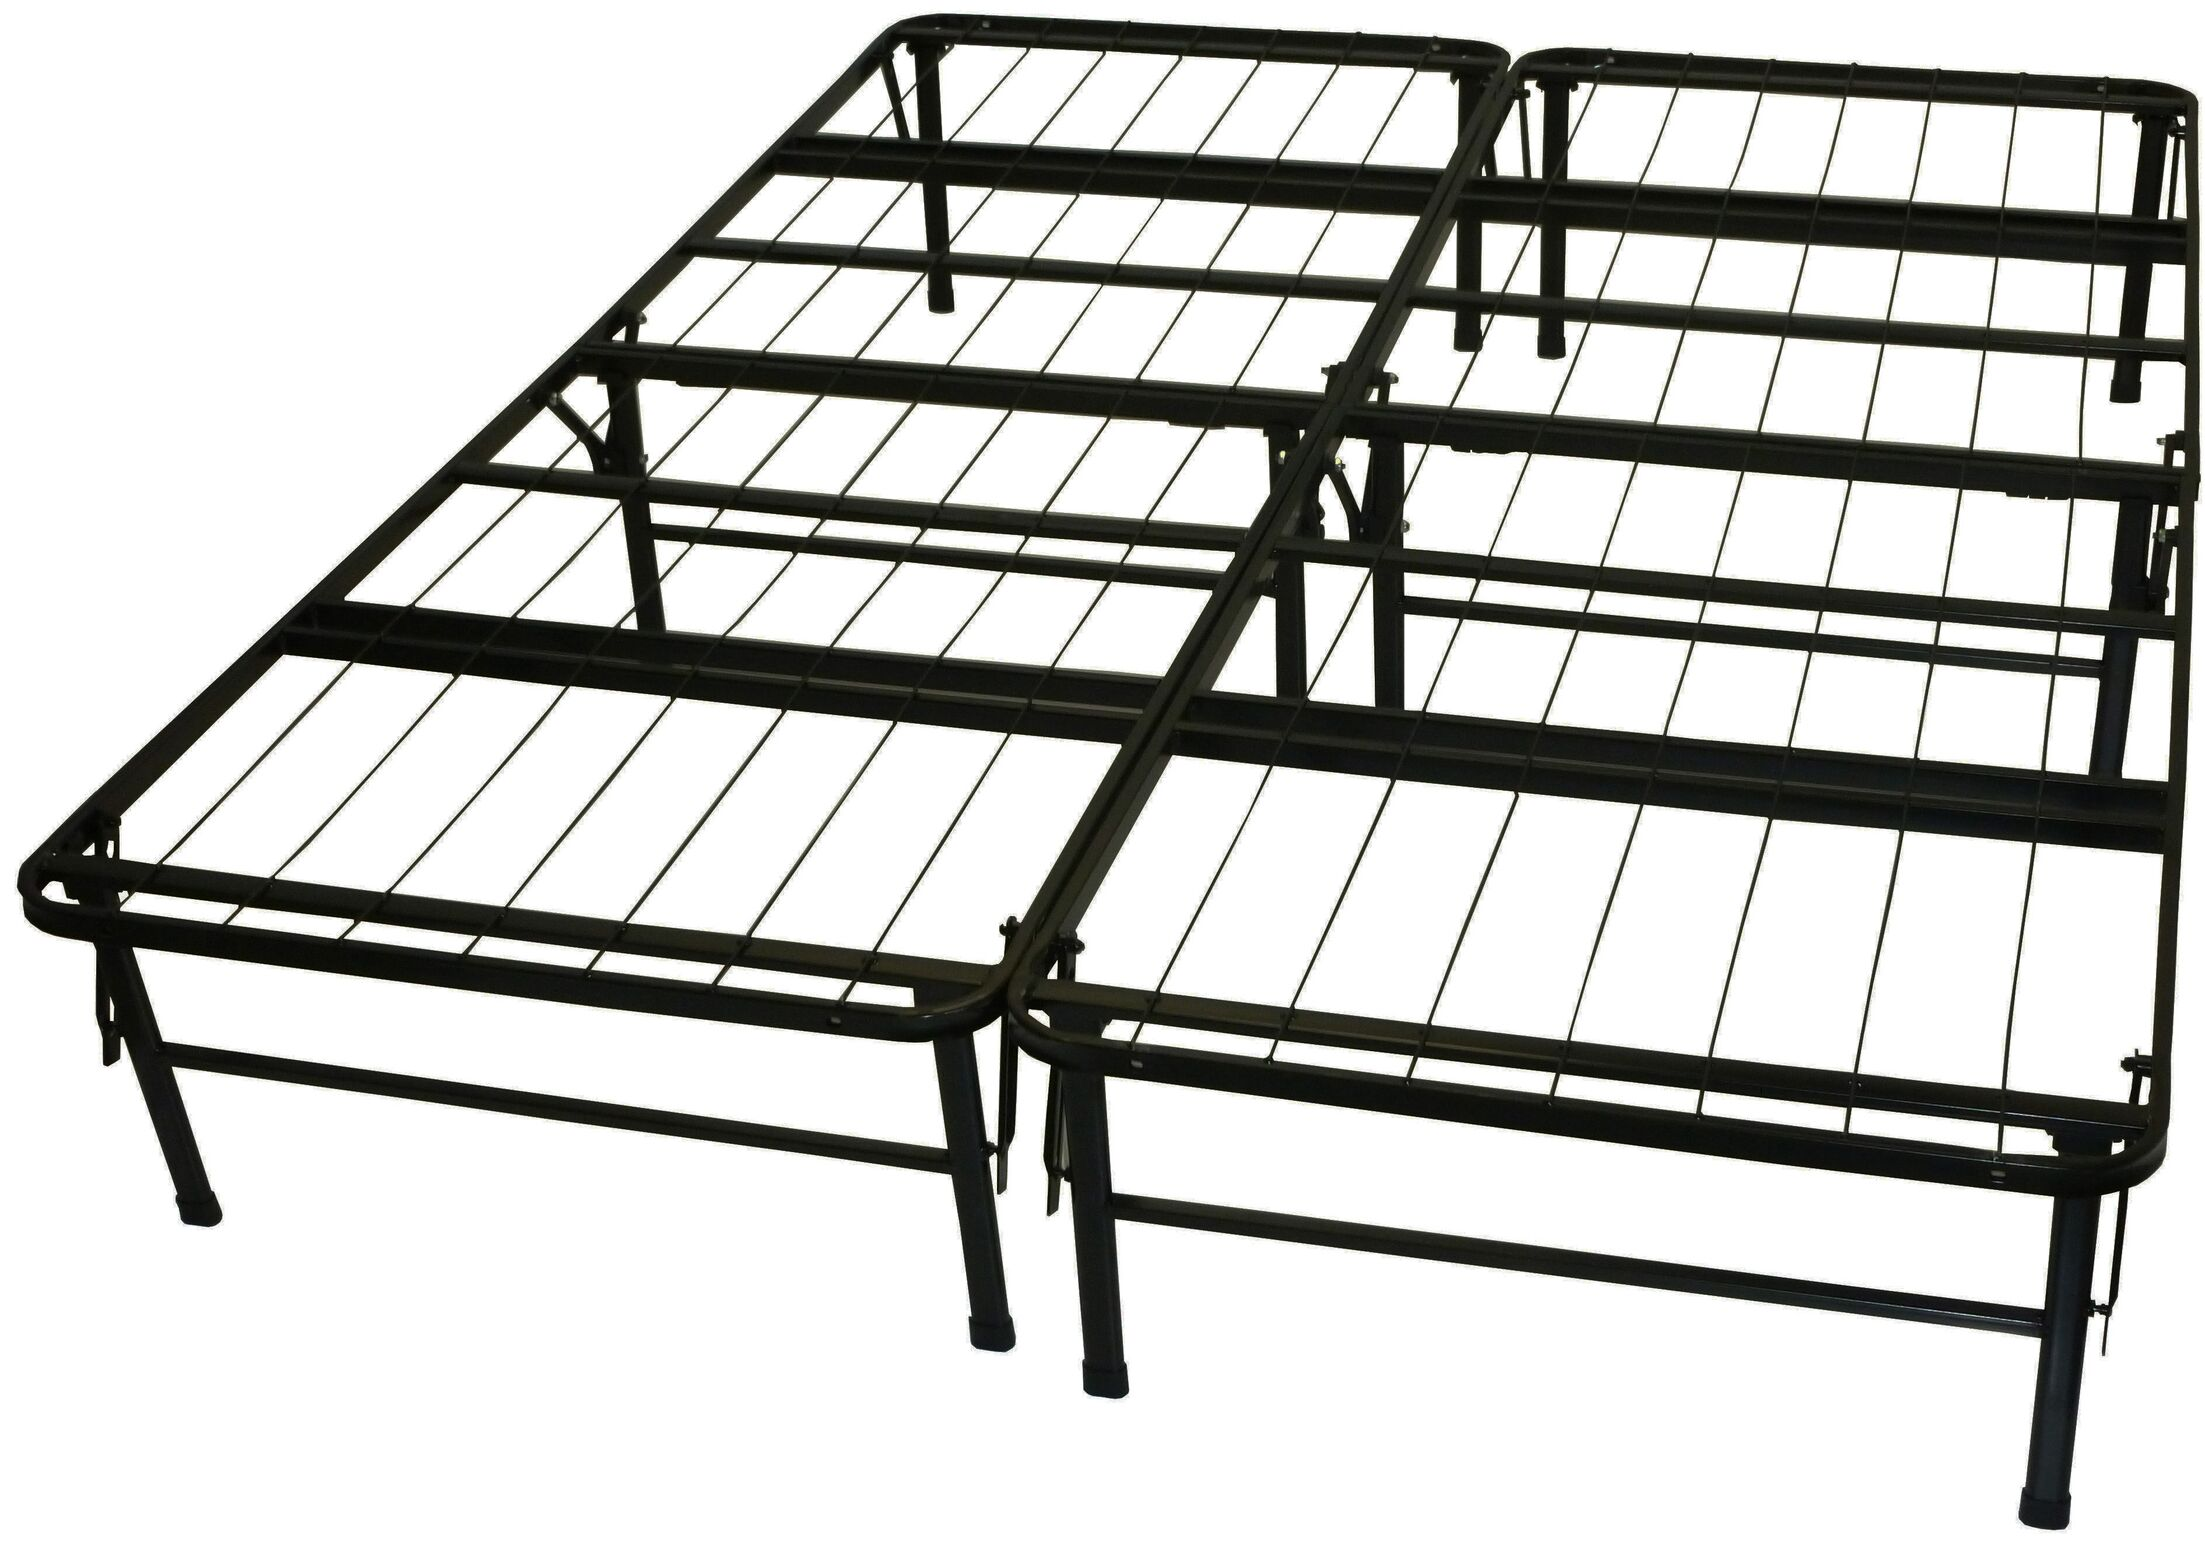 Foundation and Frame-In-One Mattress Support System Platform Bed Frame Size: Queen